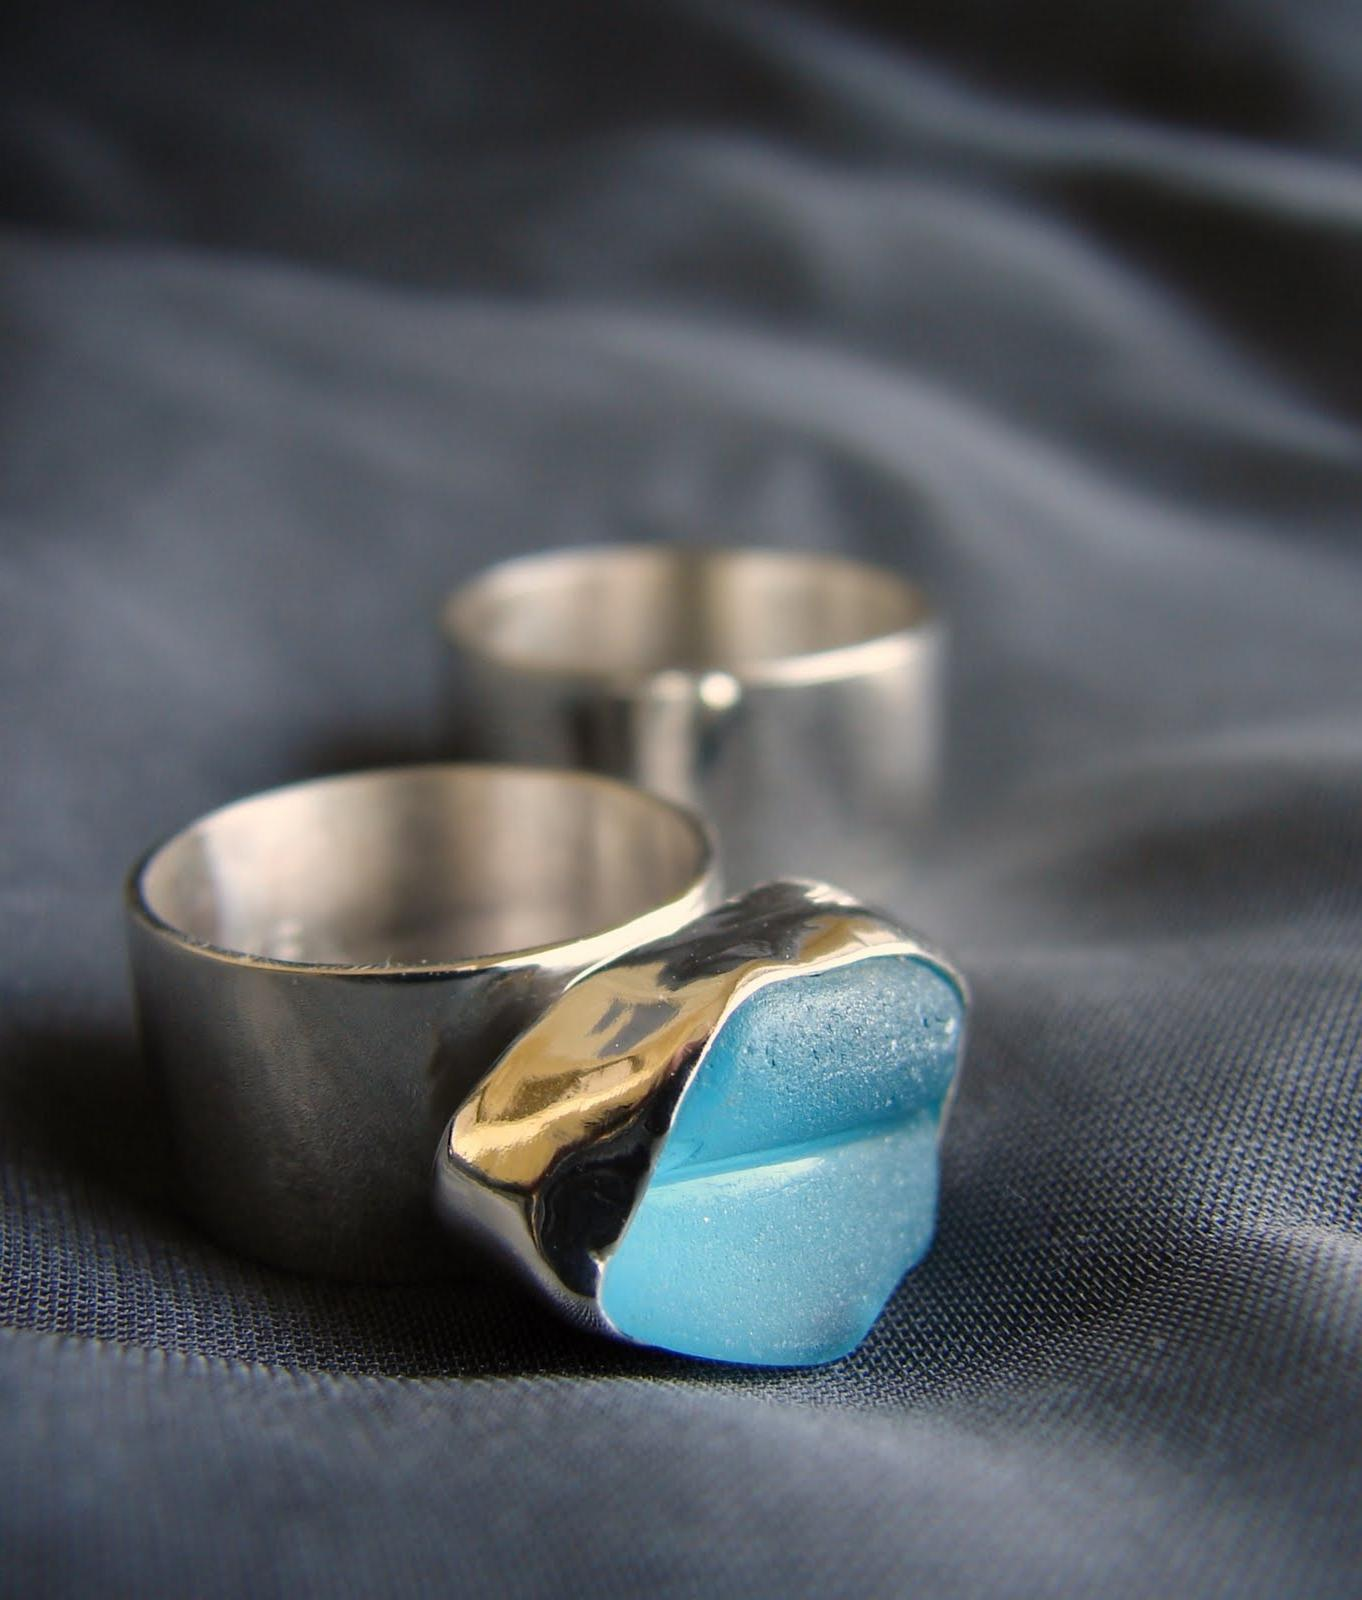 A set of wedding rings for a